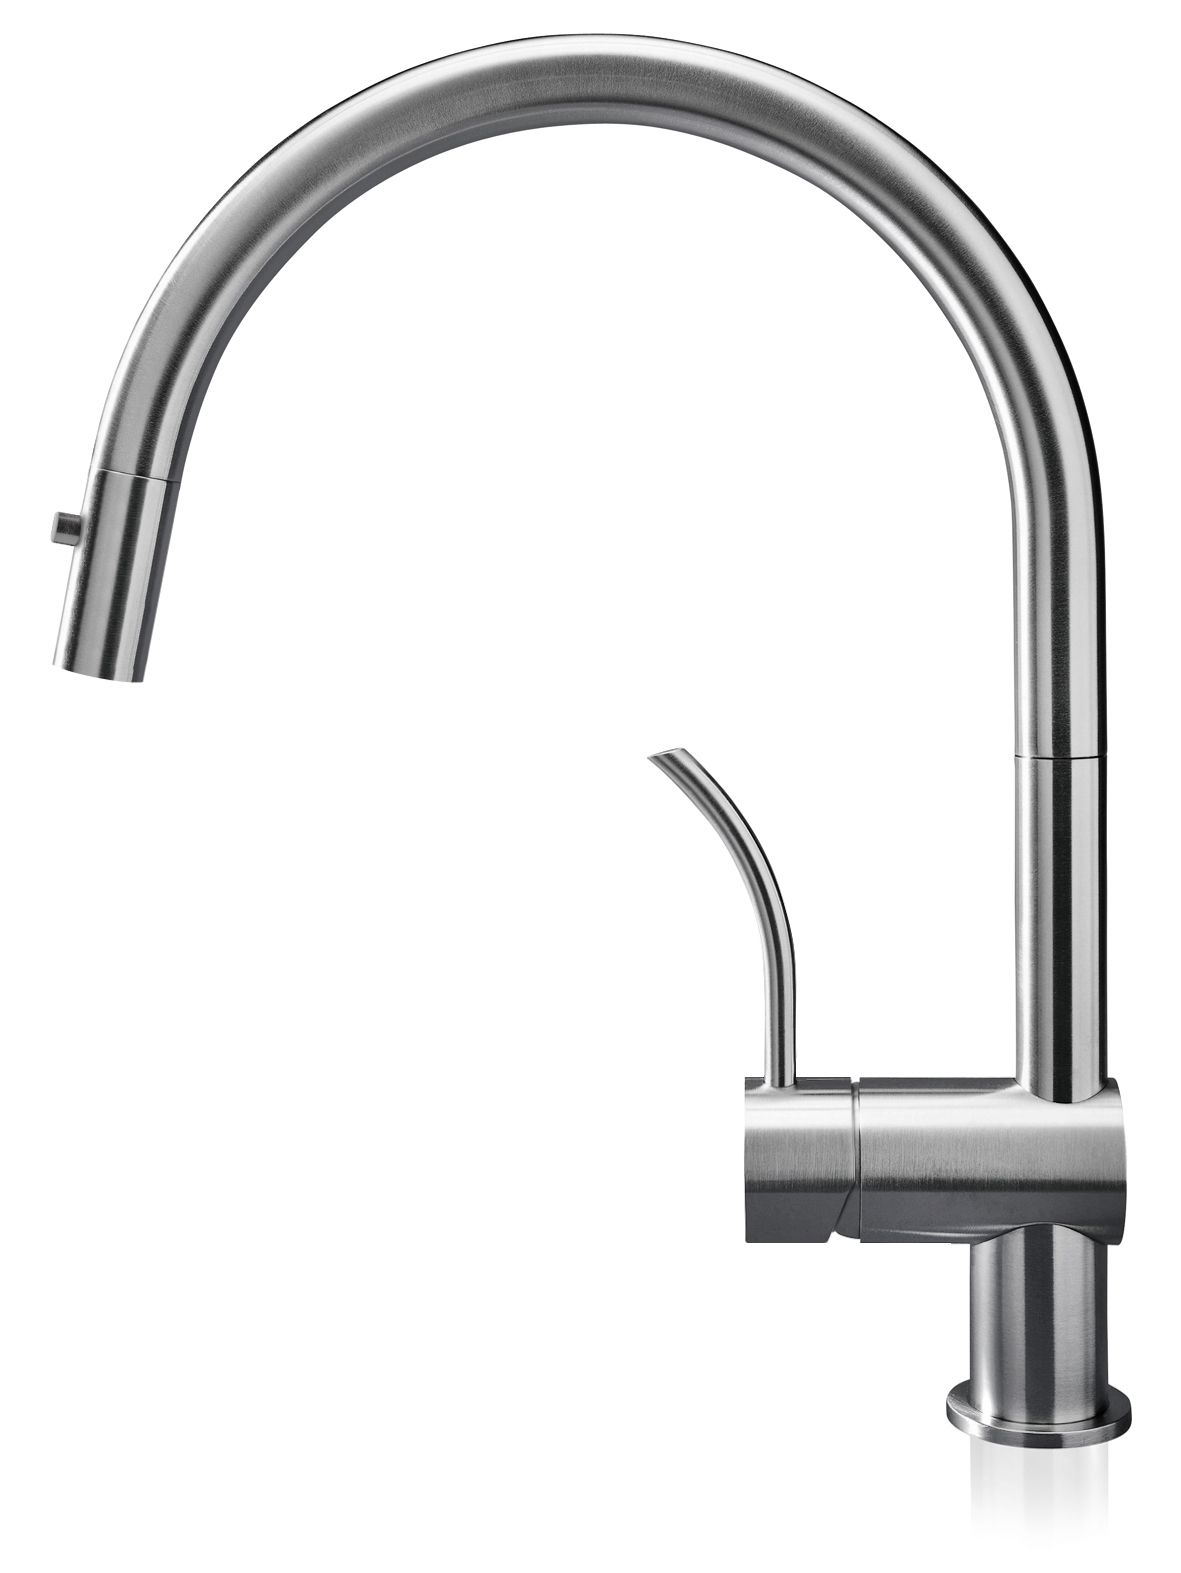 Vela Pd Product Review Stainless Steel Faucets Stainless Kitchen Faucet Kitchen Taps